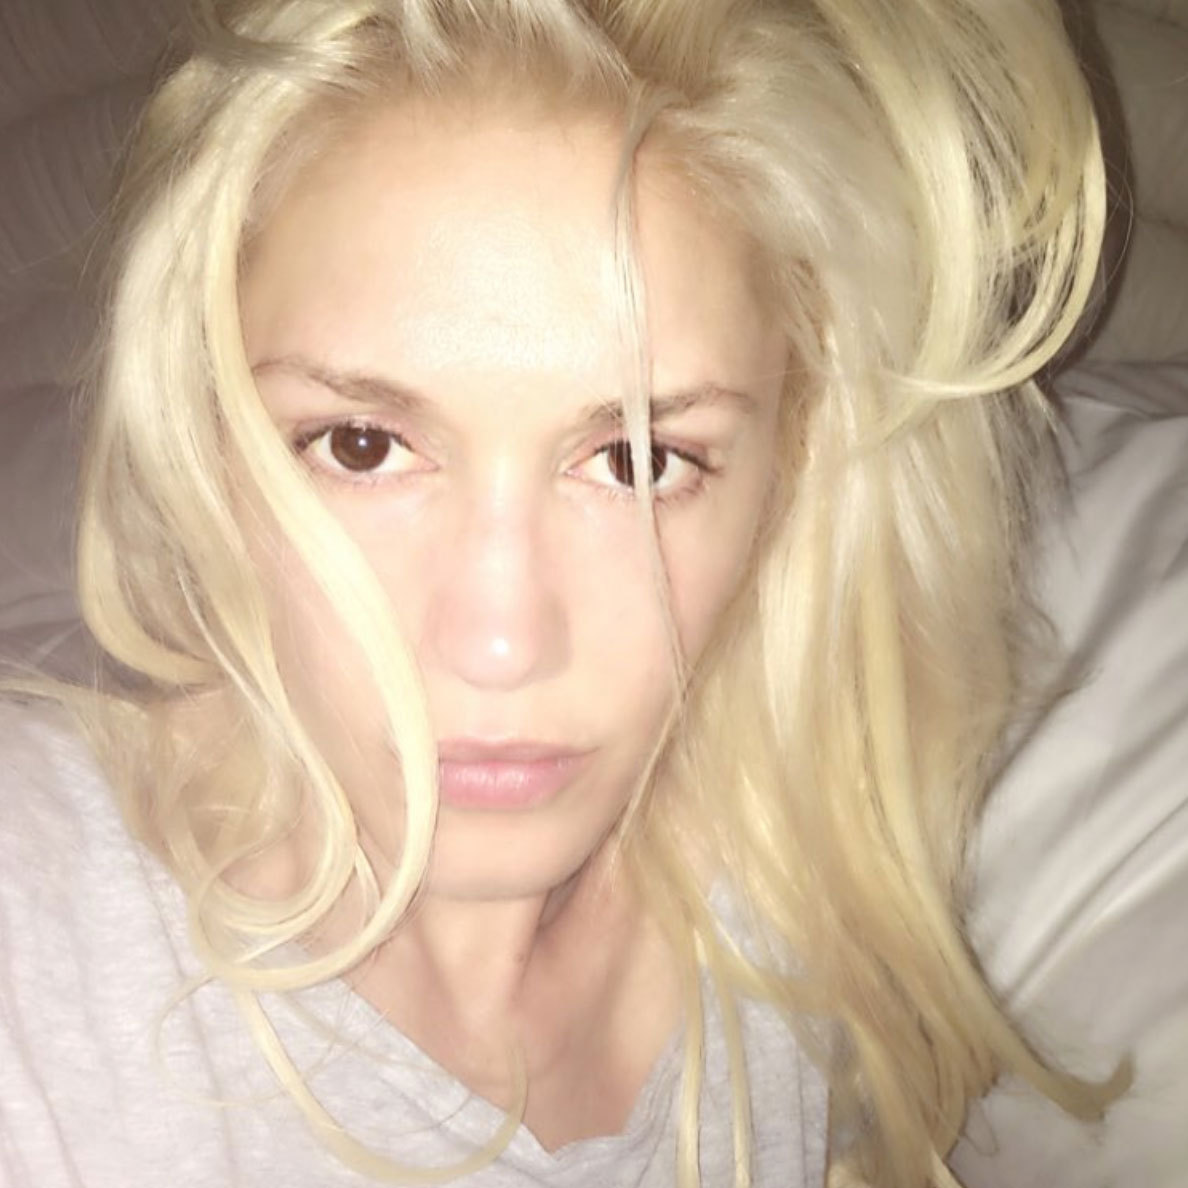 Glamor girl Gwen Stefani went makeup free for this selfie shot – complete with bed head! 